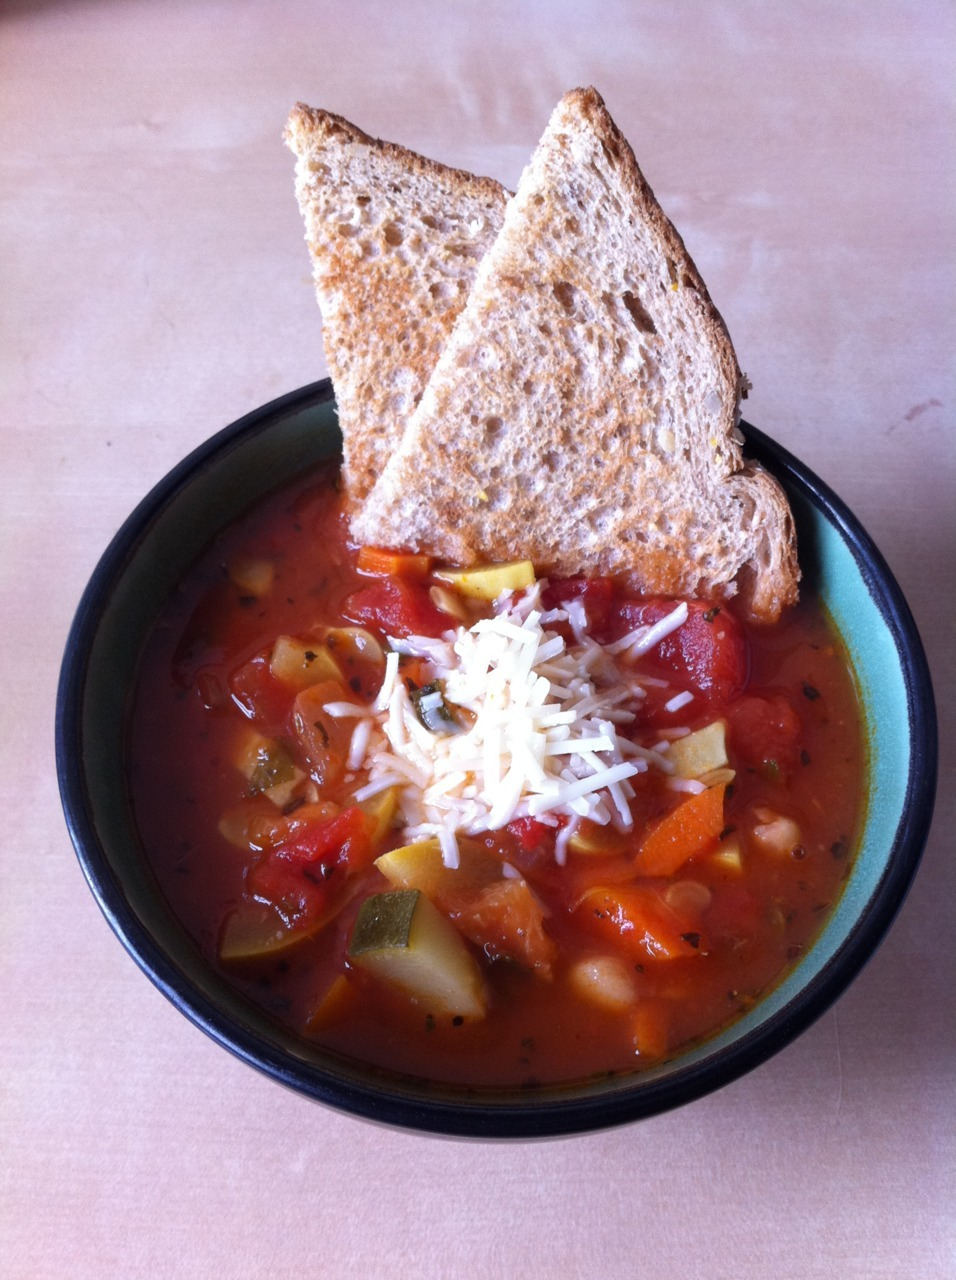 Minestrone Soup (based on Uncle Bill's Vegetarian Minestrone) Makes 8-12 servings 6c water 1 can (28oz) crushed tomatoes (low sodium) 1 can (28oz) diced tomatoes (low sodium) 1 can (16oz) great northern beans 3 large carrots, peeled and chopped 1c onion, chopped 1 zucchini, chopped 1 yellow (summer) squash, chopped 4 large cloves of garlic, diced finely or pressed 1 handful of baby spinach, chopped 2tbsp olive oil 1tsp oregano 1/2 tsp salt 1/4tsp black pepper 1c small shells pasta, cooked Possible garnishes: Upton's Italian Sausage seitan, warm crusty bread, shredded parmesan cheese In a large stock pot, saute carrots, onion, zucchini, squash, and garlic with 1/2 of the olive oil for about 2 mins. Add beans, both cans of tomatoes, water, spices, the remaining oil, and spinach cook over medium-high heat until it comes to a boil. Reduce heat to medium and cover. Cook until the vegetables are tender, approximately 15-25mins. Serve over pasta. Freezing instructions: If freezing, do not add the pasta to the soup.